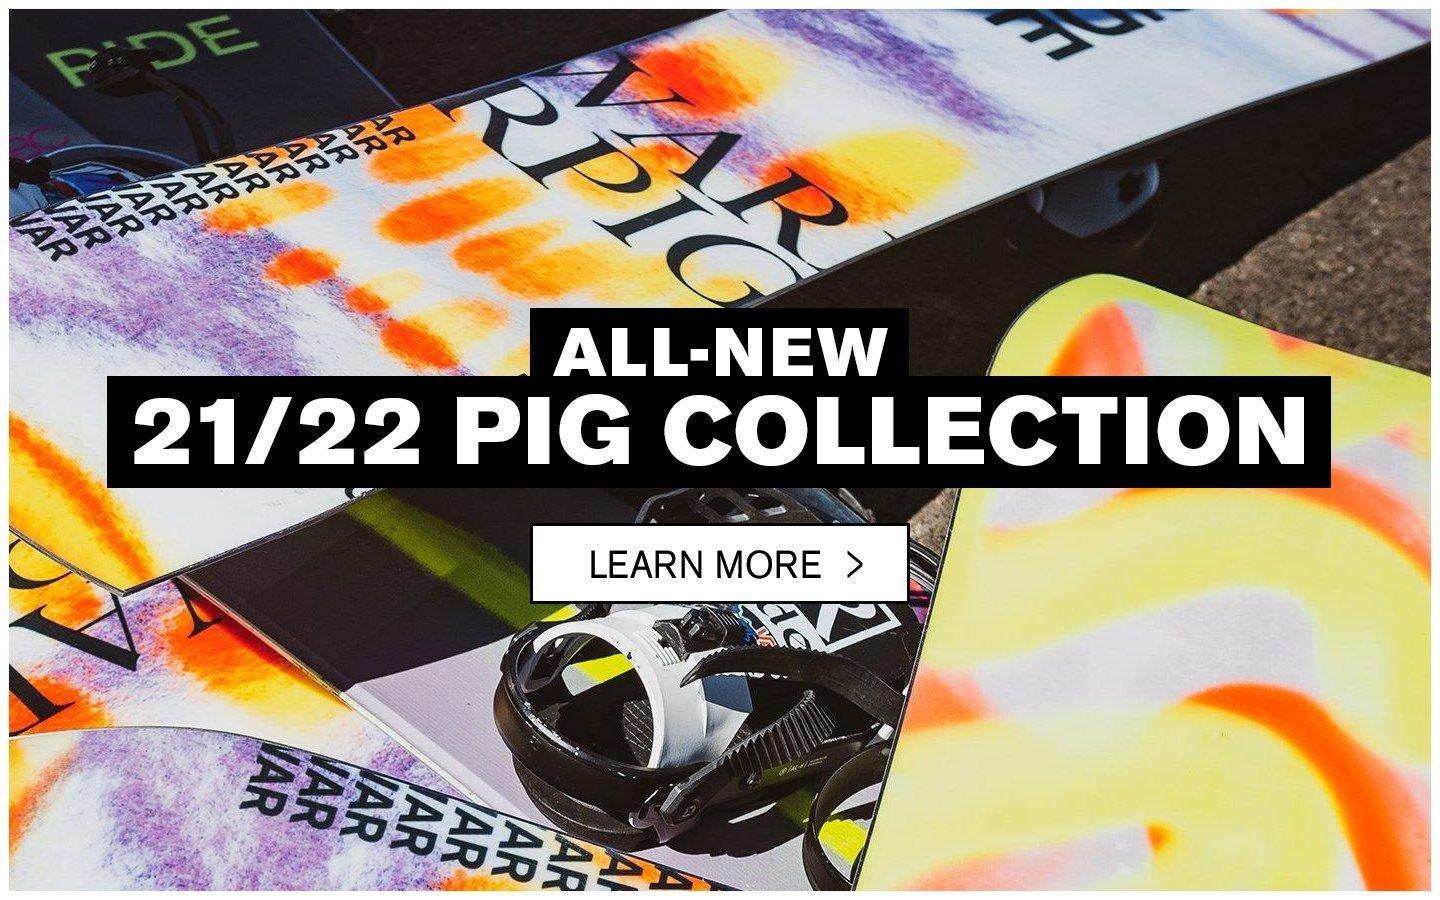 Pig Collection - Learn More